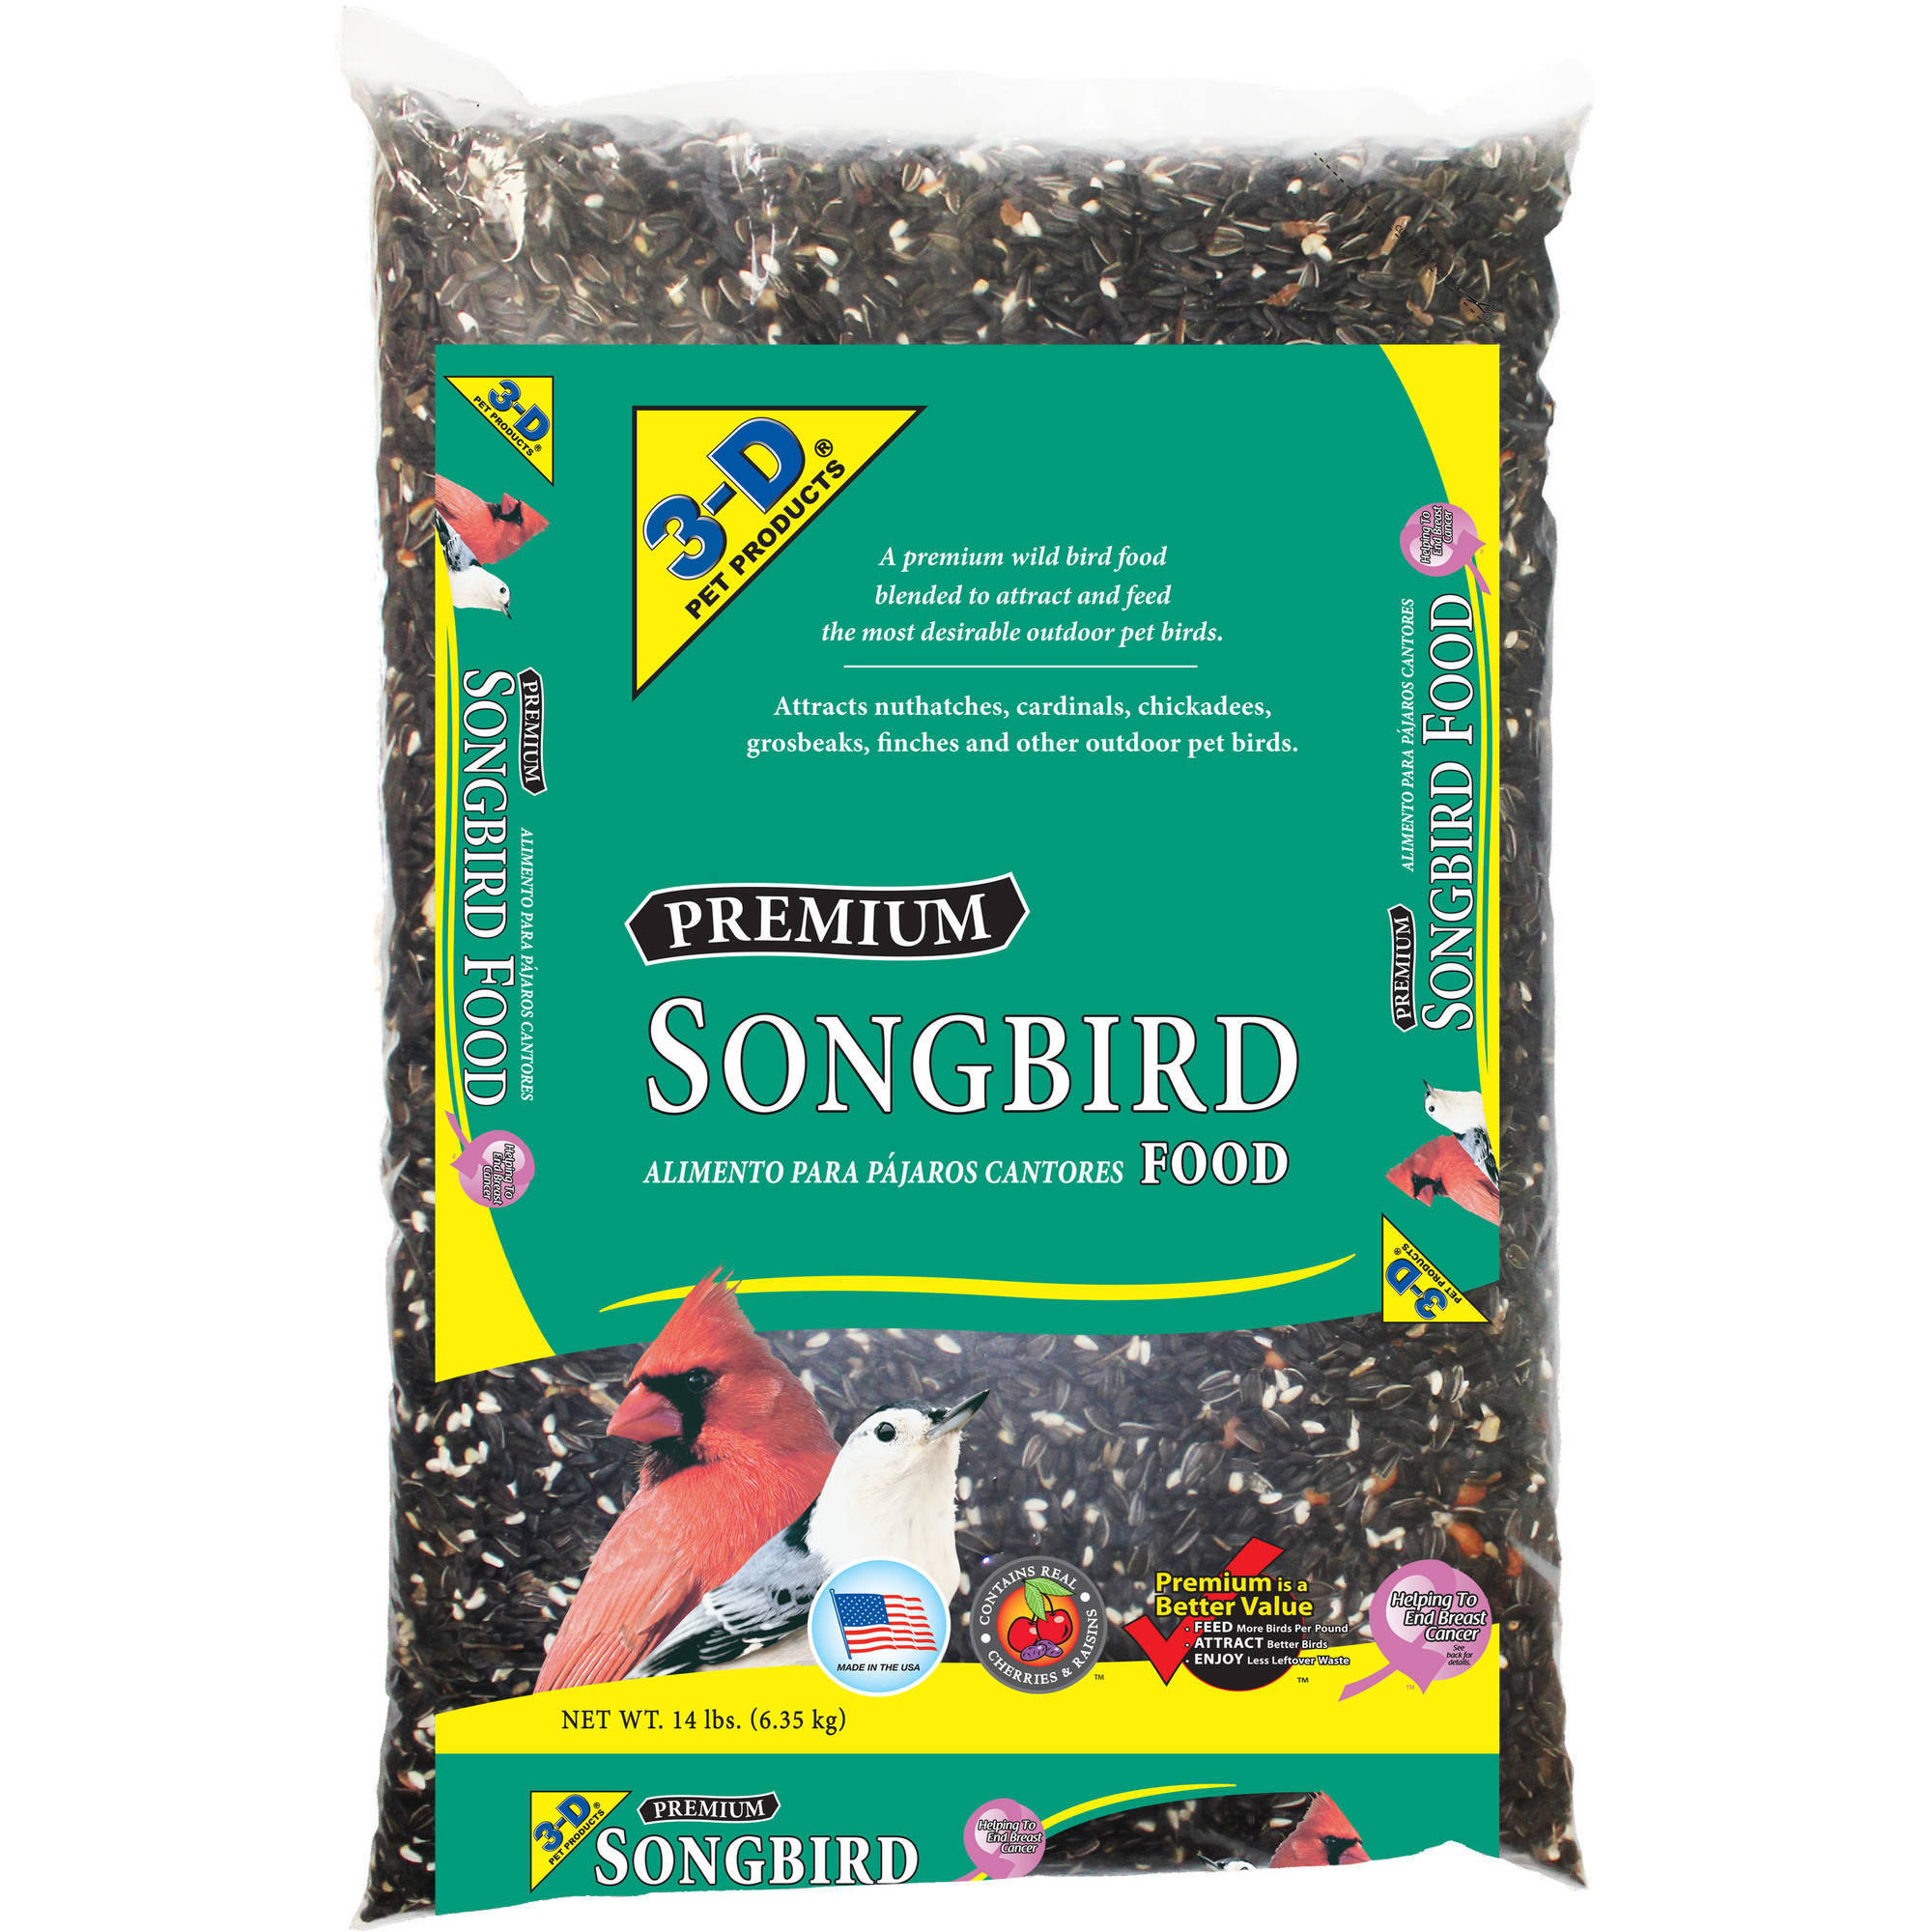 Image of 3-D Songbird Food, 14 lbs